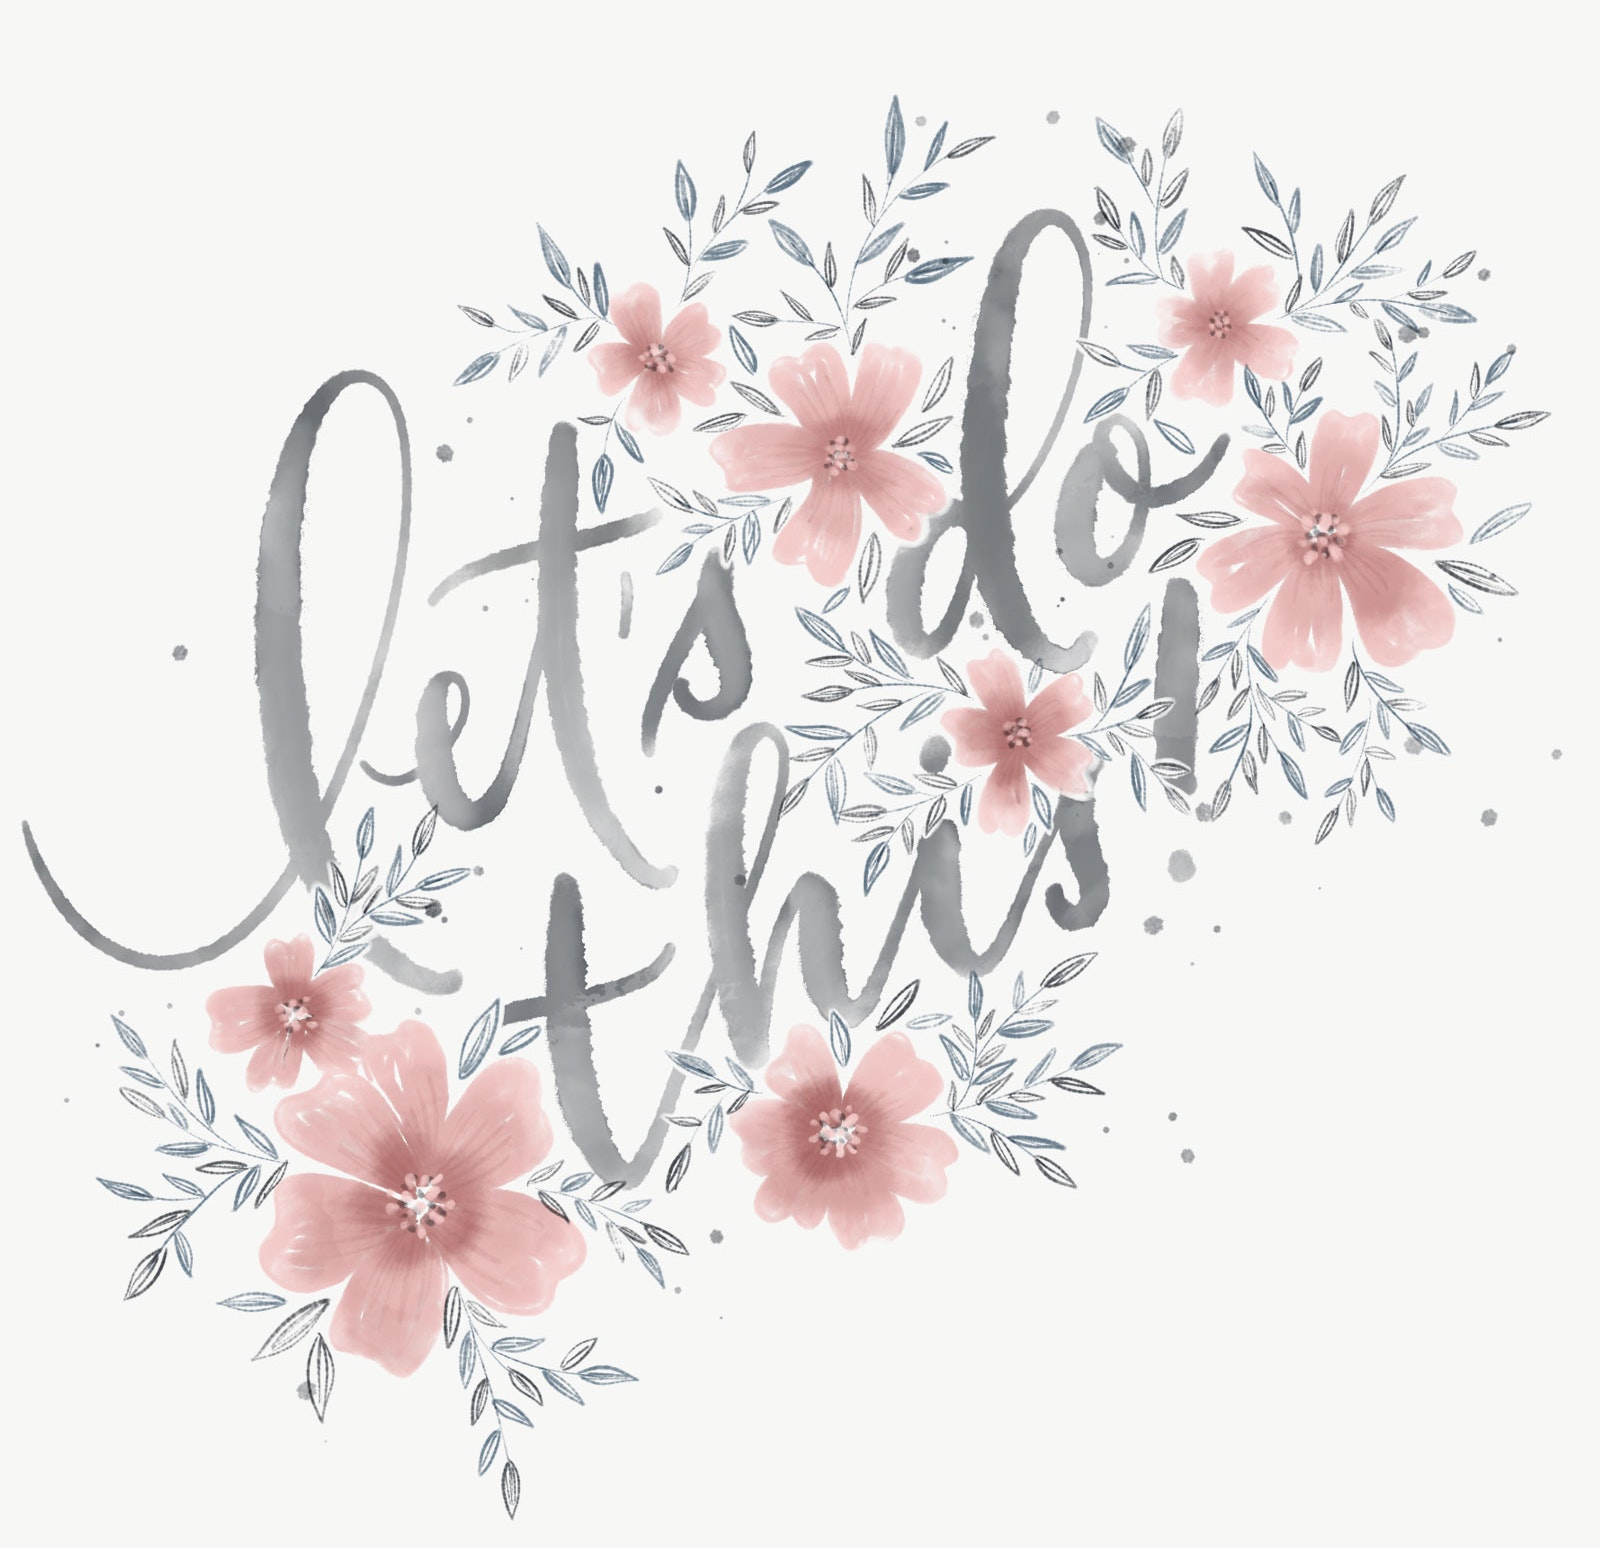 Enroll in Watercolor lettering for Procreate today!